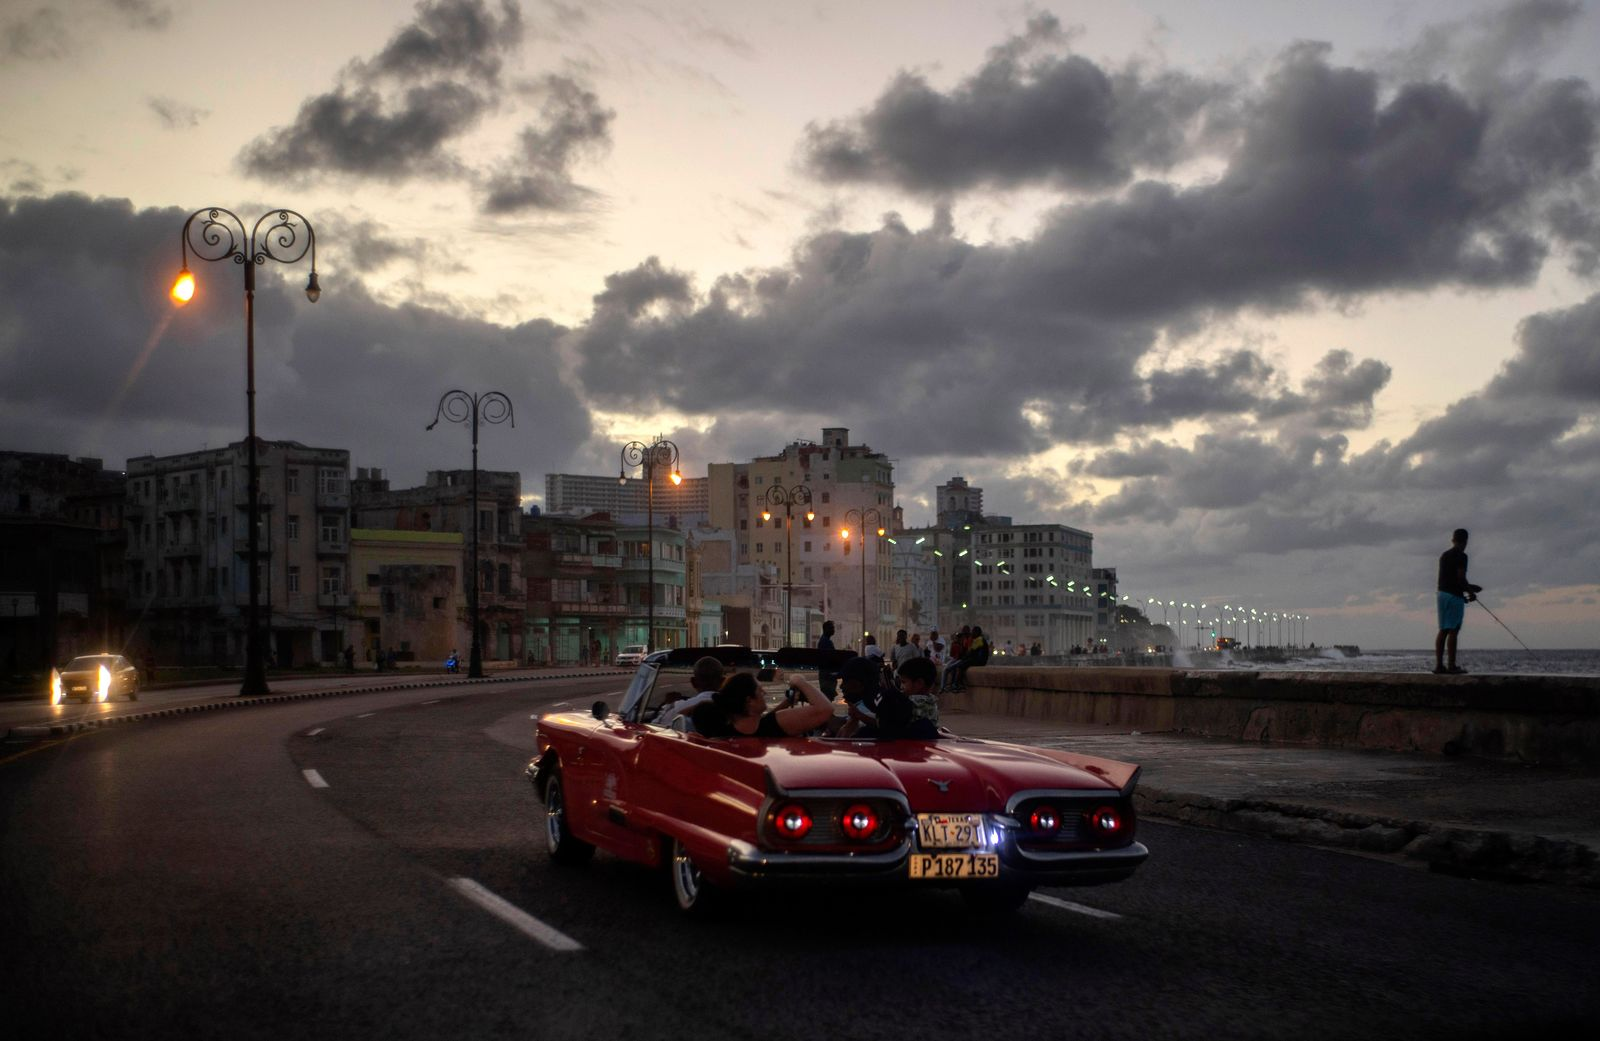 In this Nov. 10, 2019 photo, tourists take a joy ride along the malecon sea wall in Havana, Cuba. The city of Havana will celebrate its 500th anniversary on Nov. 16. (AP Photo/Ramon Espinosa)